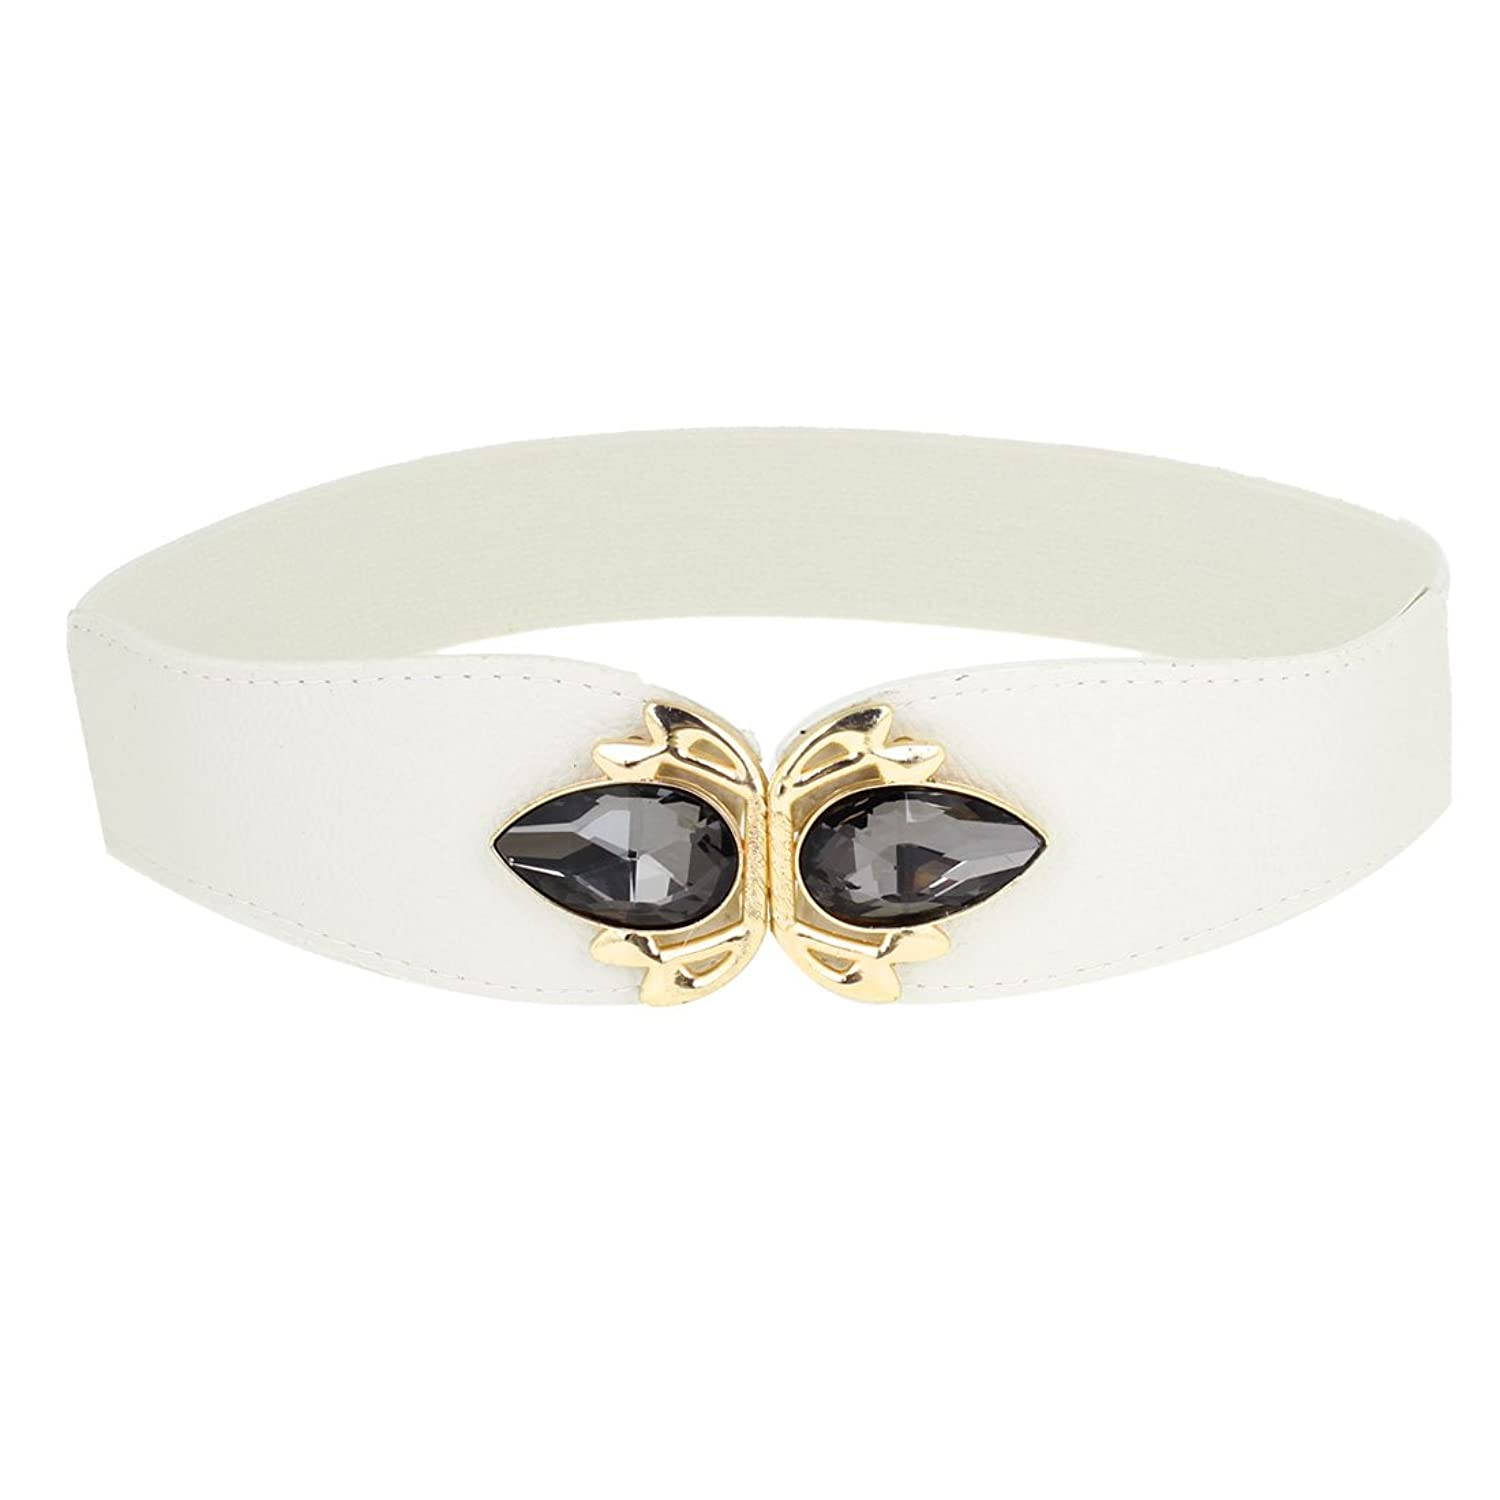 Lady Artificial Crystal Decor Faux Leather White Elastic Waist Belt Waistband